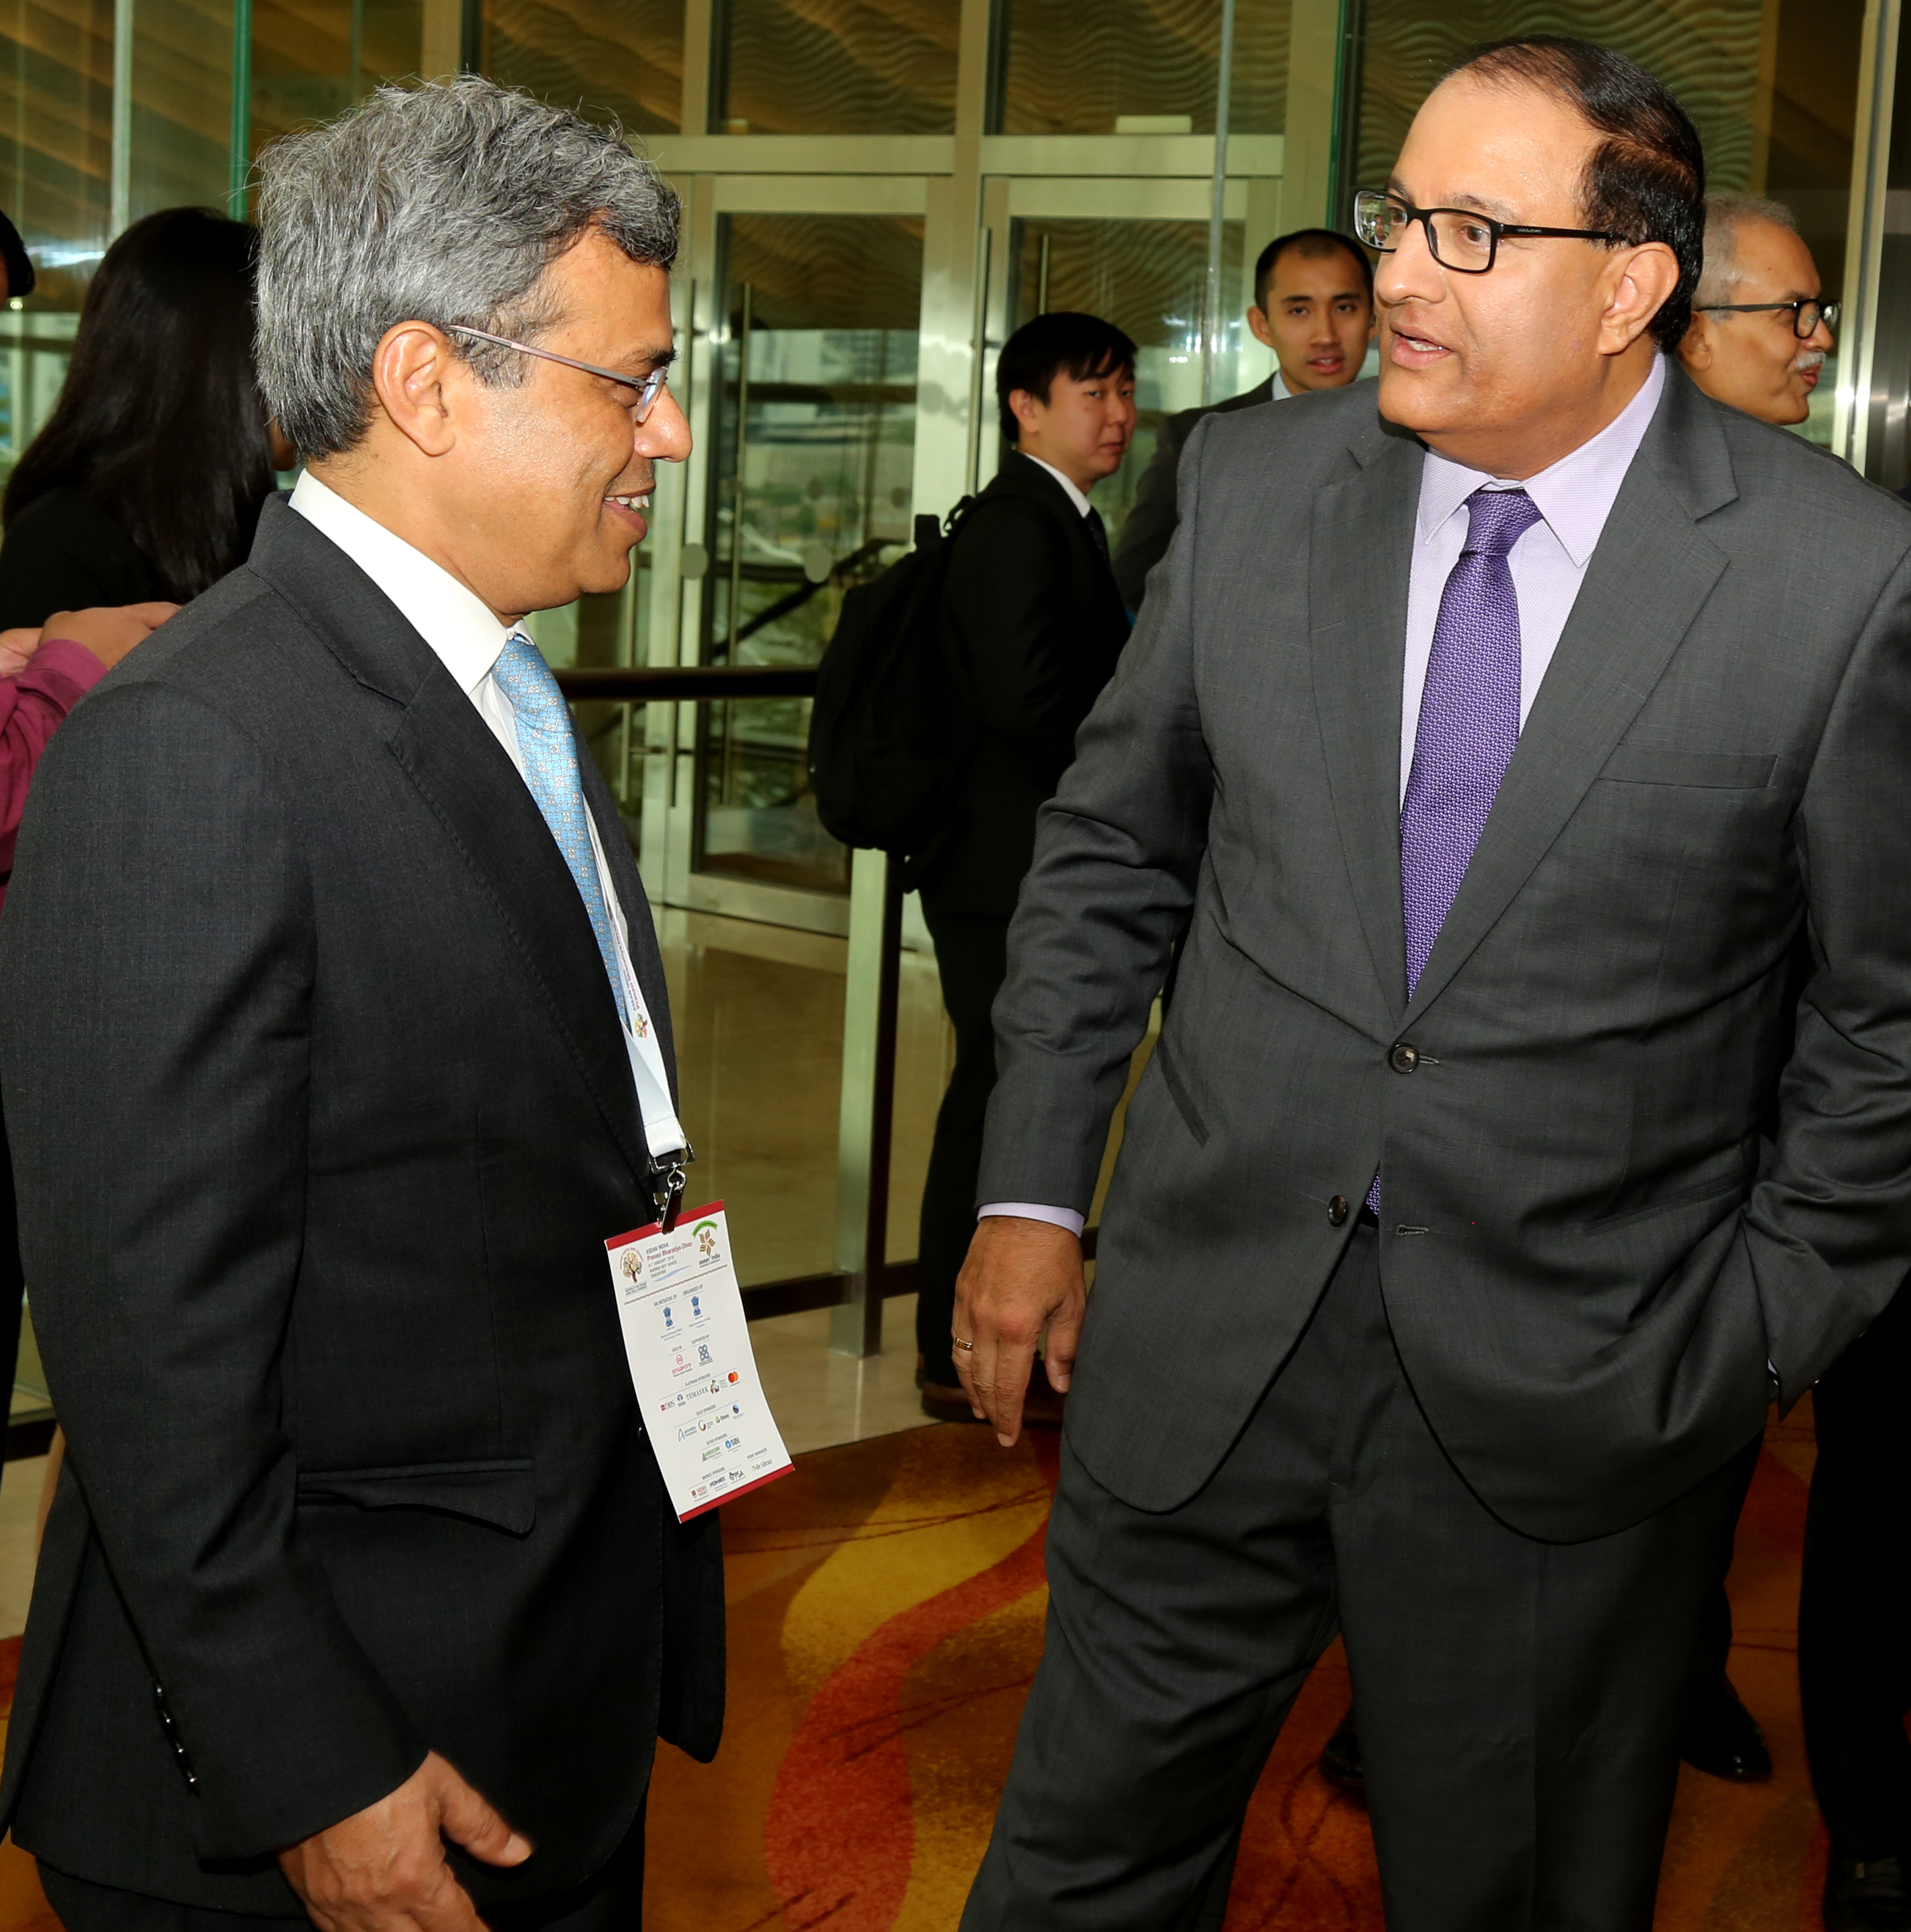 S Iswaran, Minister for Trade and Industry (left) with Jawed Ashraf, High Commissioner of India to Singapore at the ASEAN India Pravasi Bharatiya Divas